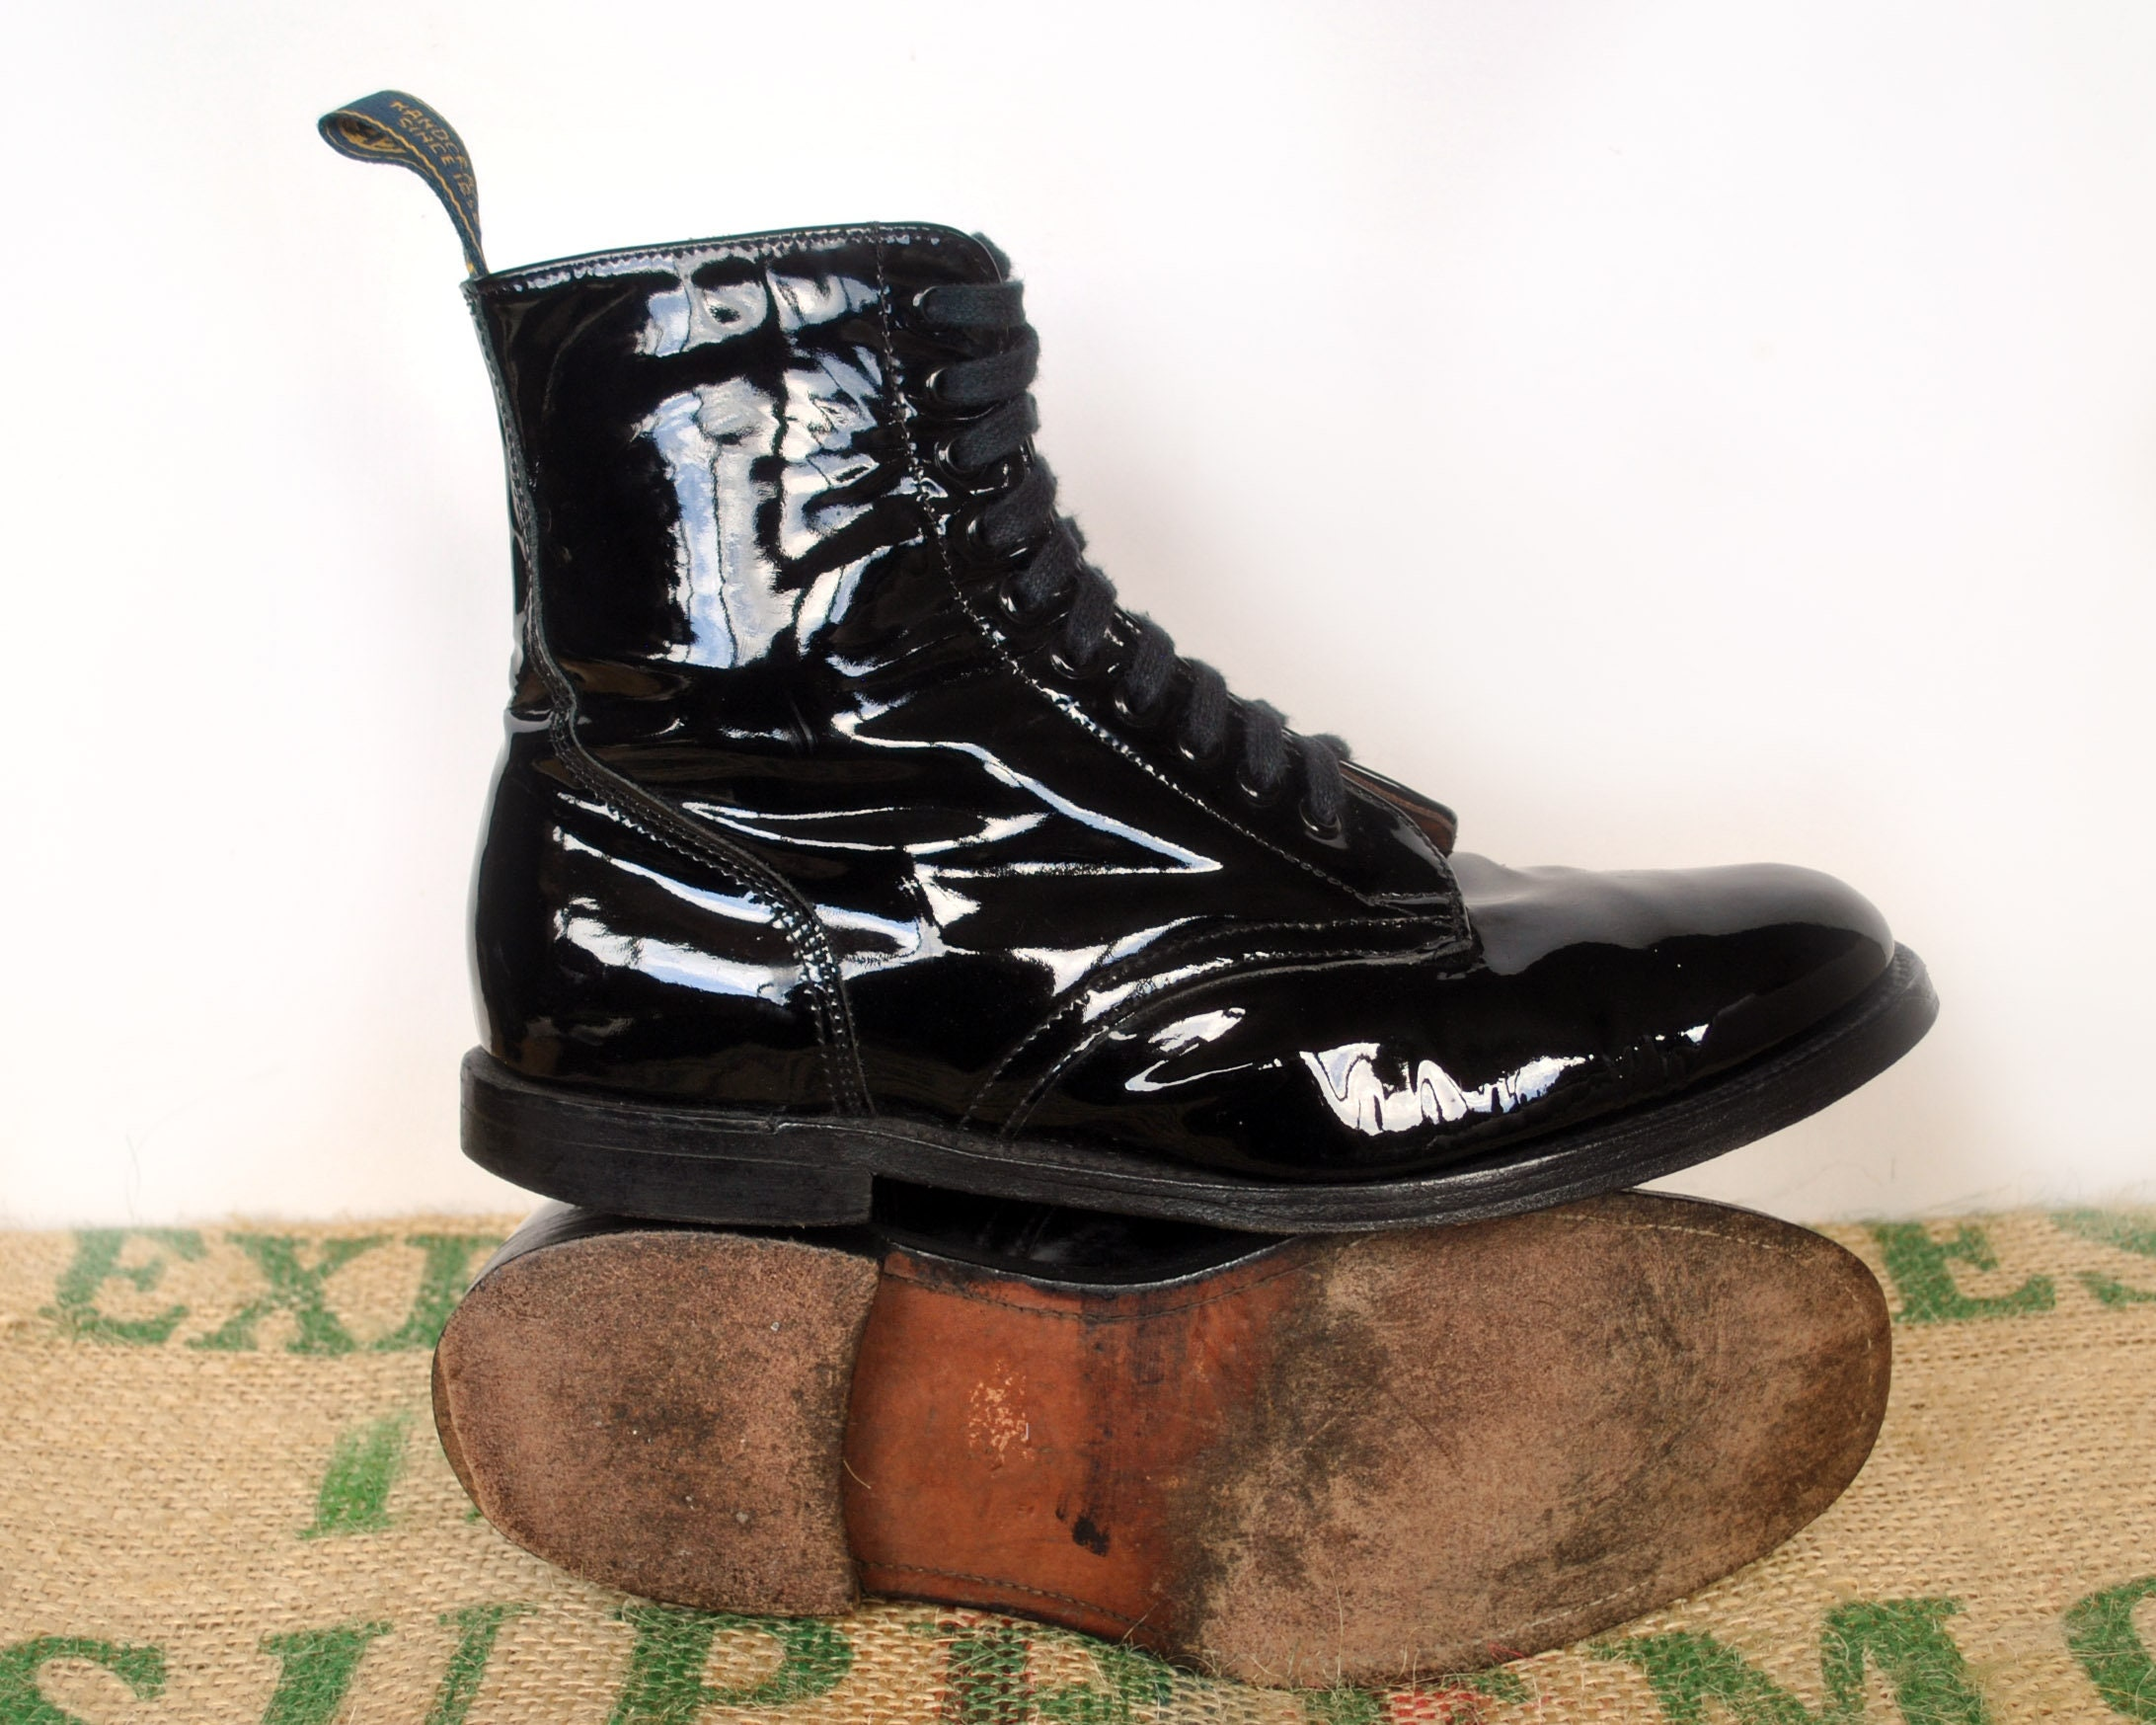 7d545e8b70fae Black Patent Leather Baxter Ankle Boots - Vintage Made in Australia – Gloss  Military style – lace up - Size Au 9 usM 10.5 usL 11.5 EU 44